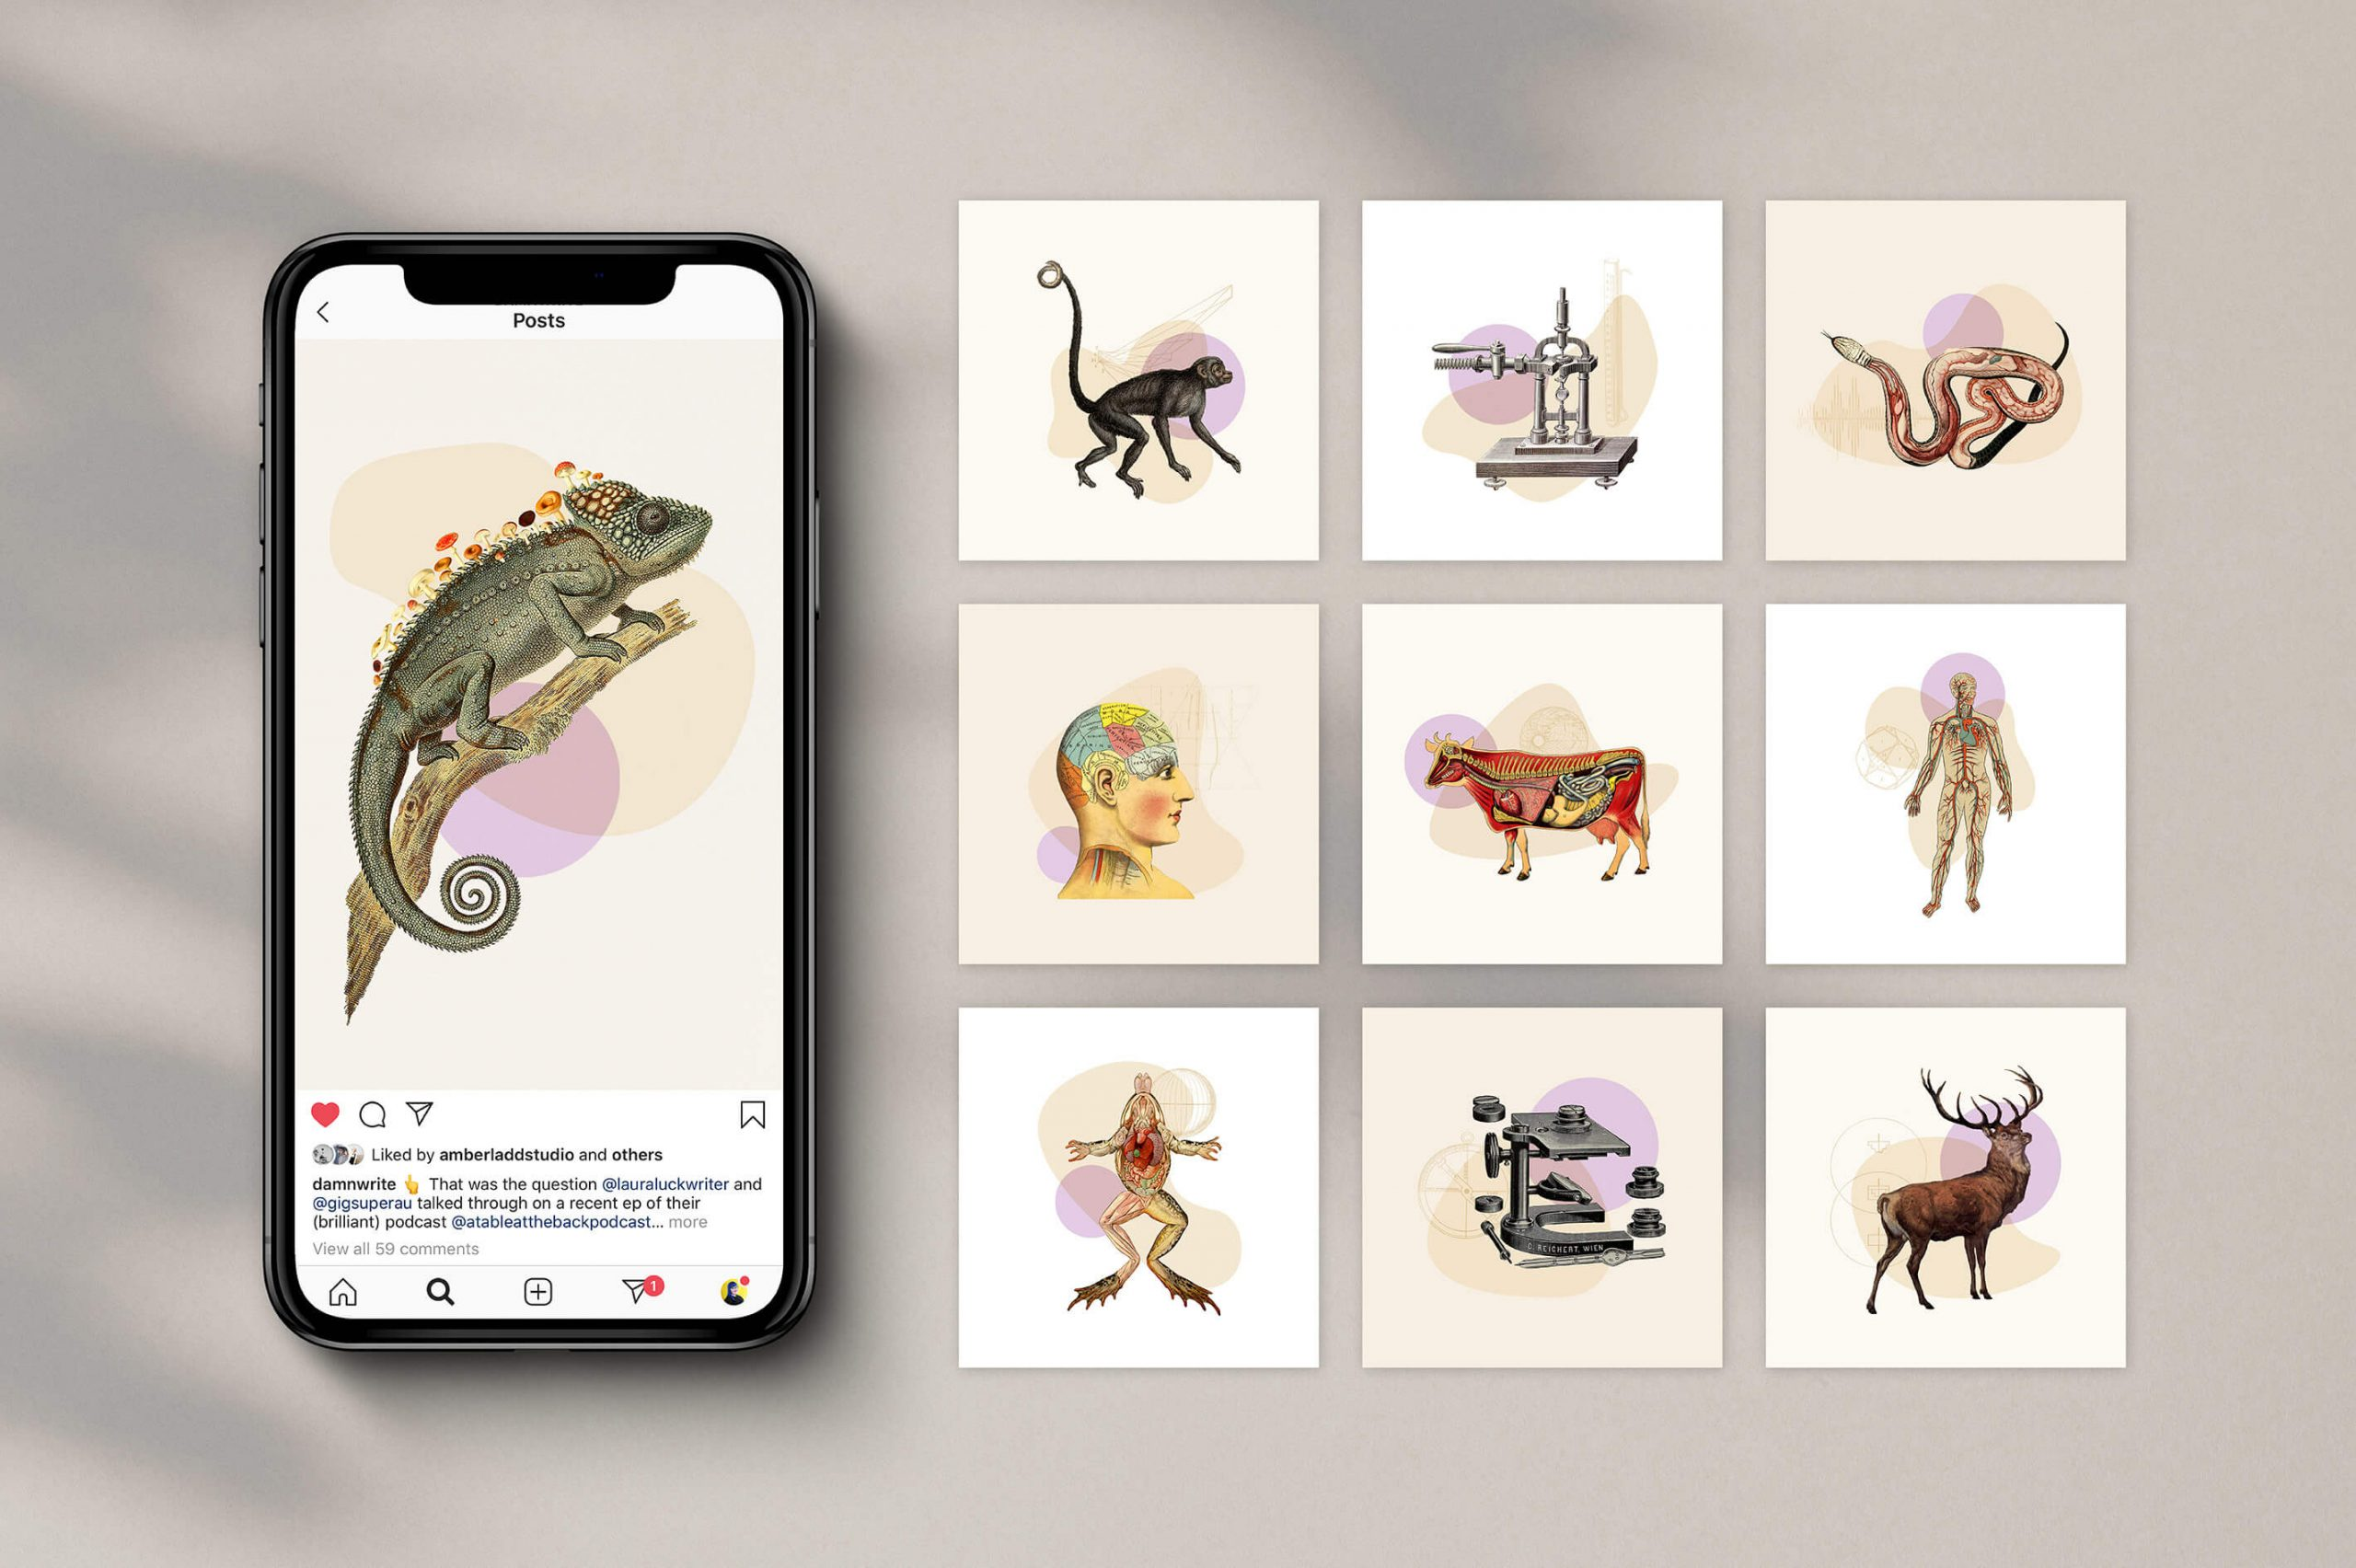 iphone and nine posts showing the rollout of vintage illustrations as apart of brand identity